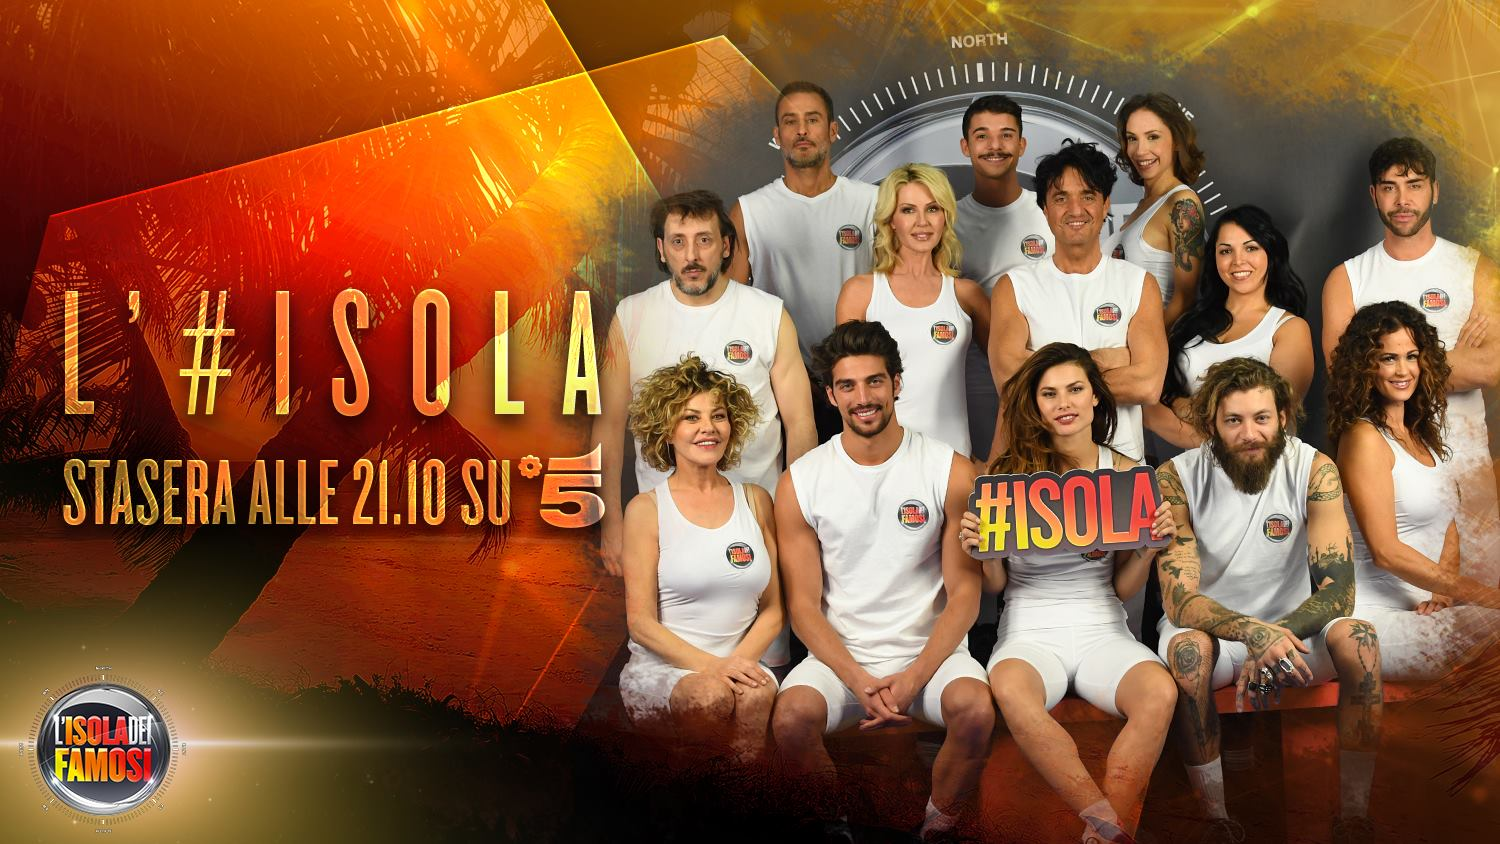 isola dating After its huge success in several european countries, the naked dating reality show the island of adam and eve has finally arrived in italy the show pur.